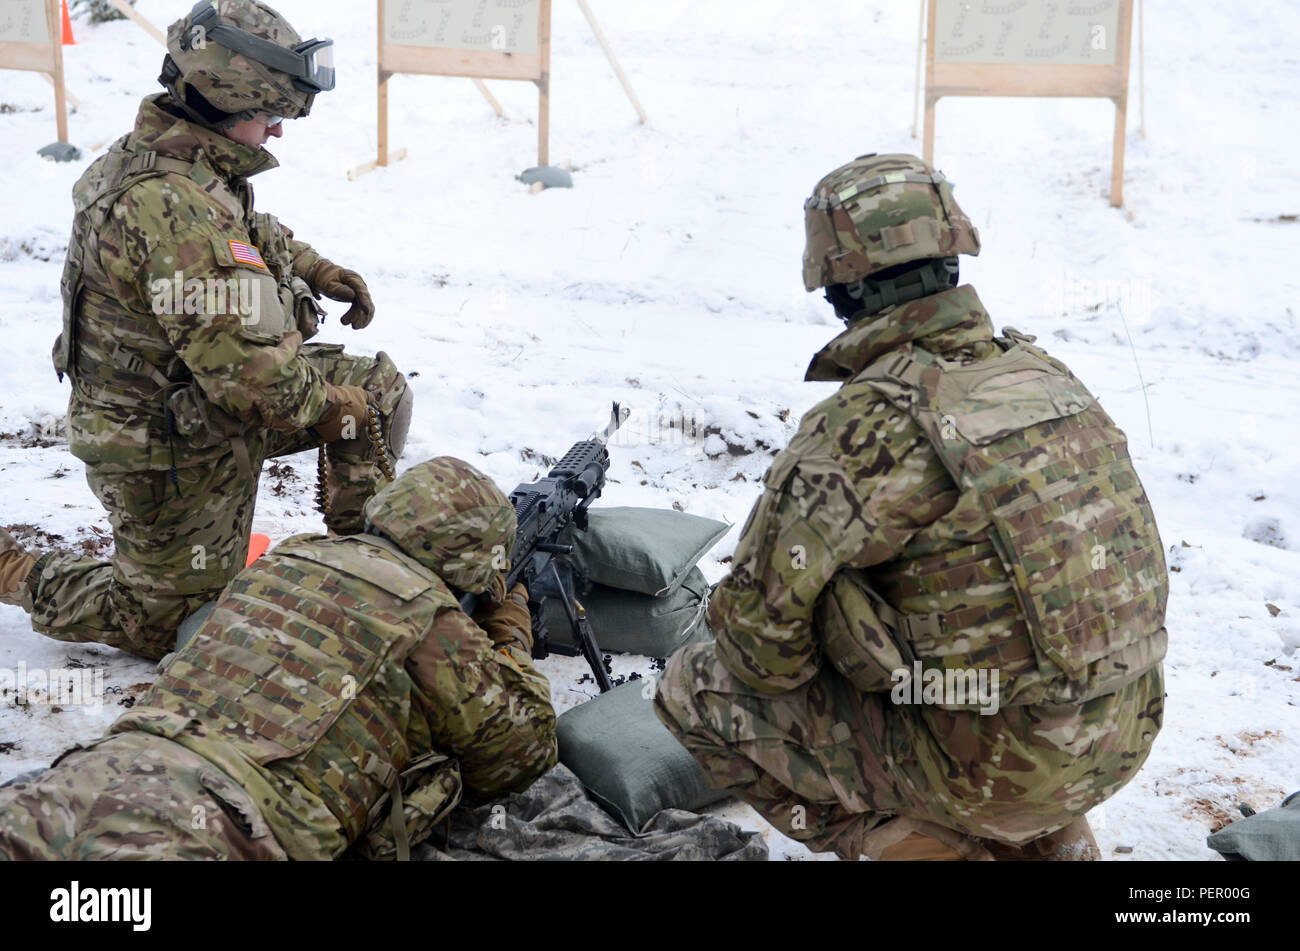 Pvt. Traverse Jarman (center), originally from Crestwook, Ill., fires an M240 machine gun as Pfc.Collin Sapp (left), originally from Muldrow, Okla., feeds the ammunition and Staff Sgt. Andrew Nee (right), originally from Harlan, Iowa, coaches during a training exercise at Adazi Training Area in Latvia, Jan. 25, 2016. All three Soldiers are with 3rd Squadron, 2nd Cavalry Regiment, stationed at Vilseck, Germany, in support of Atlantic Resolve. (U.S. Army photo by Staff Sgt. Steven Colvin/Released) - Stock Image